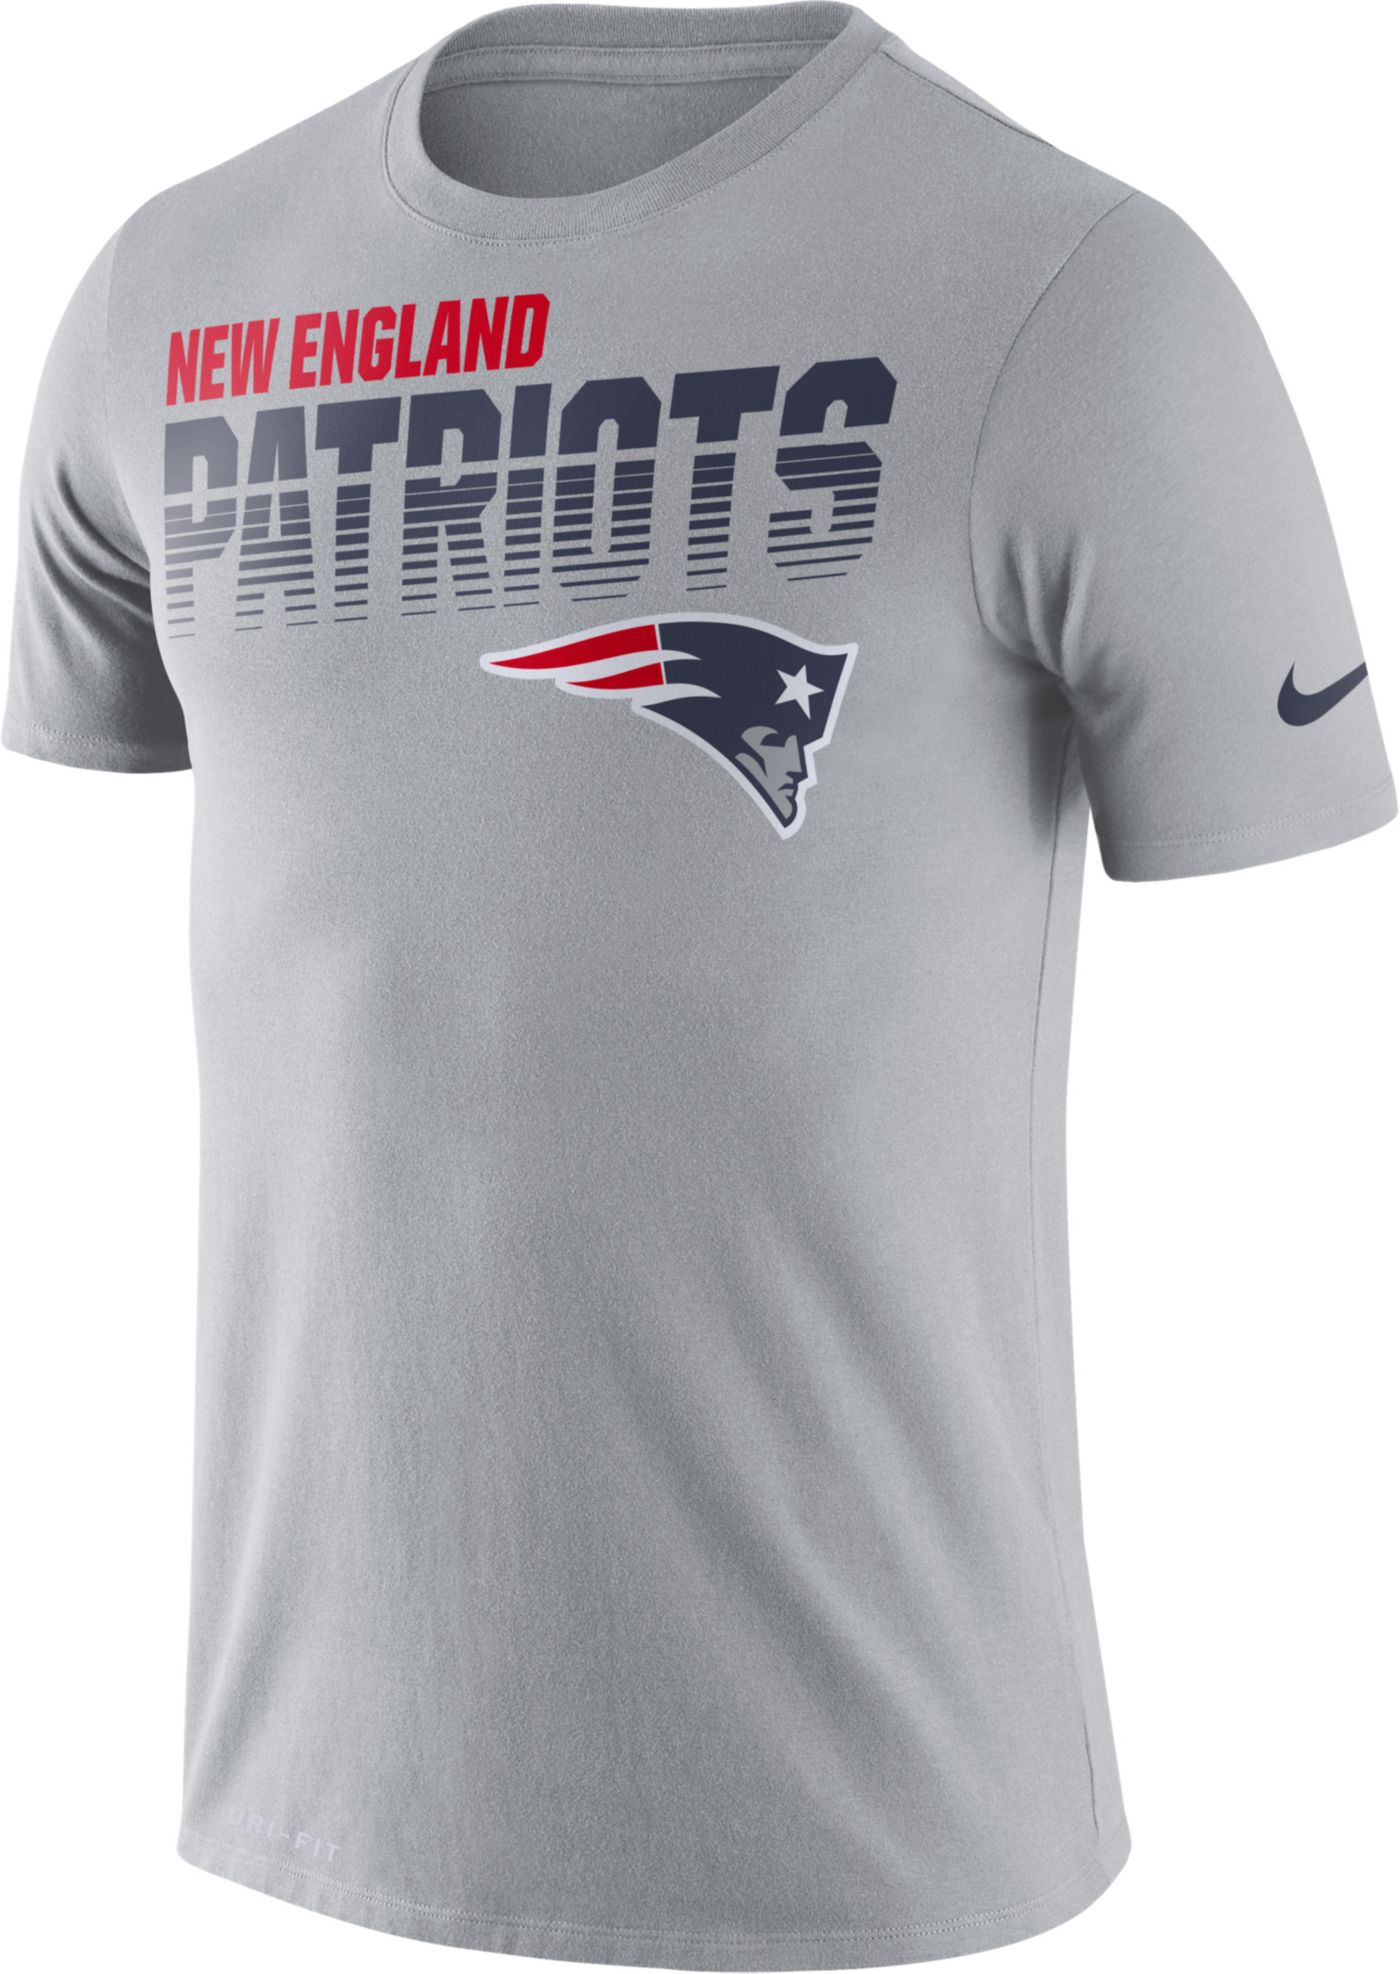 Nike Men's New England Patriots Sideline Legend Performance Grey T-Shirt